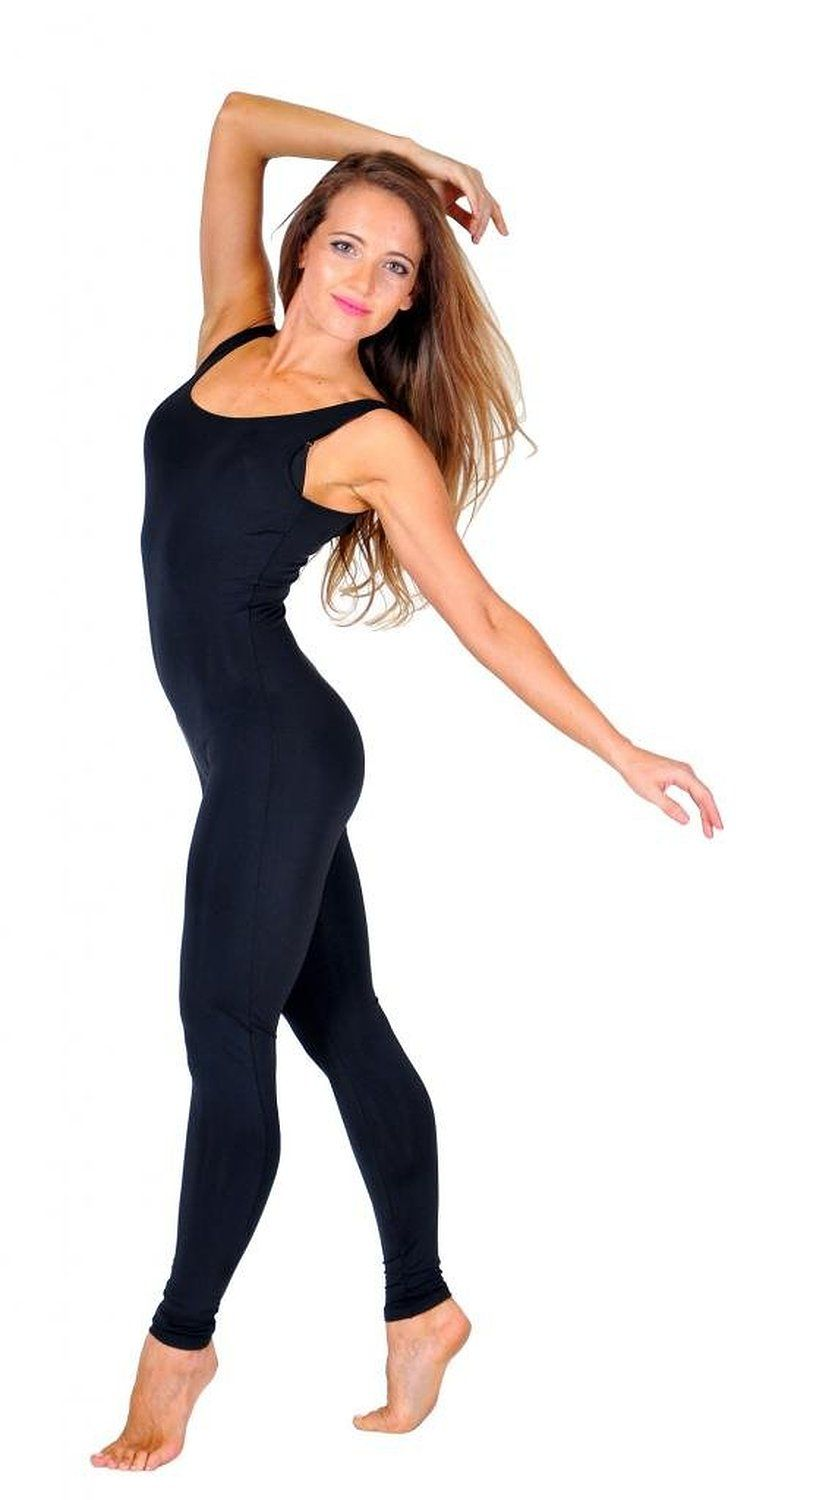 Black spandex dance unitard gymnastics and dancewear - Ensnovo Lycra Spandex Women Unitard Bodysuit Tank Top Tight Suits Dancewear Unitard Dance Costumes Ballet Gymnastics